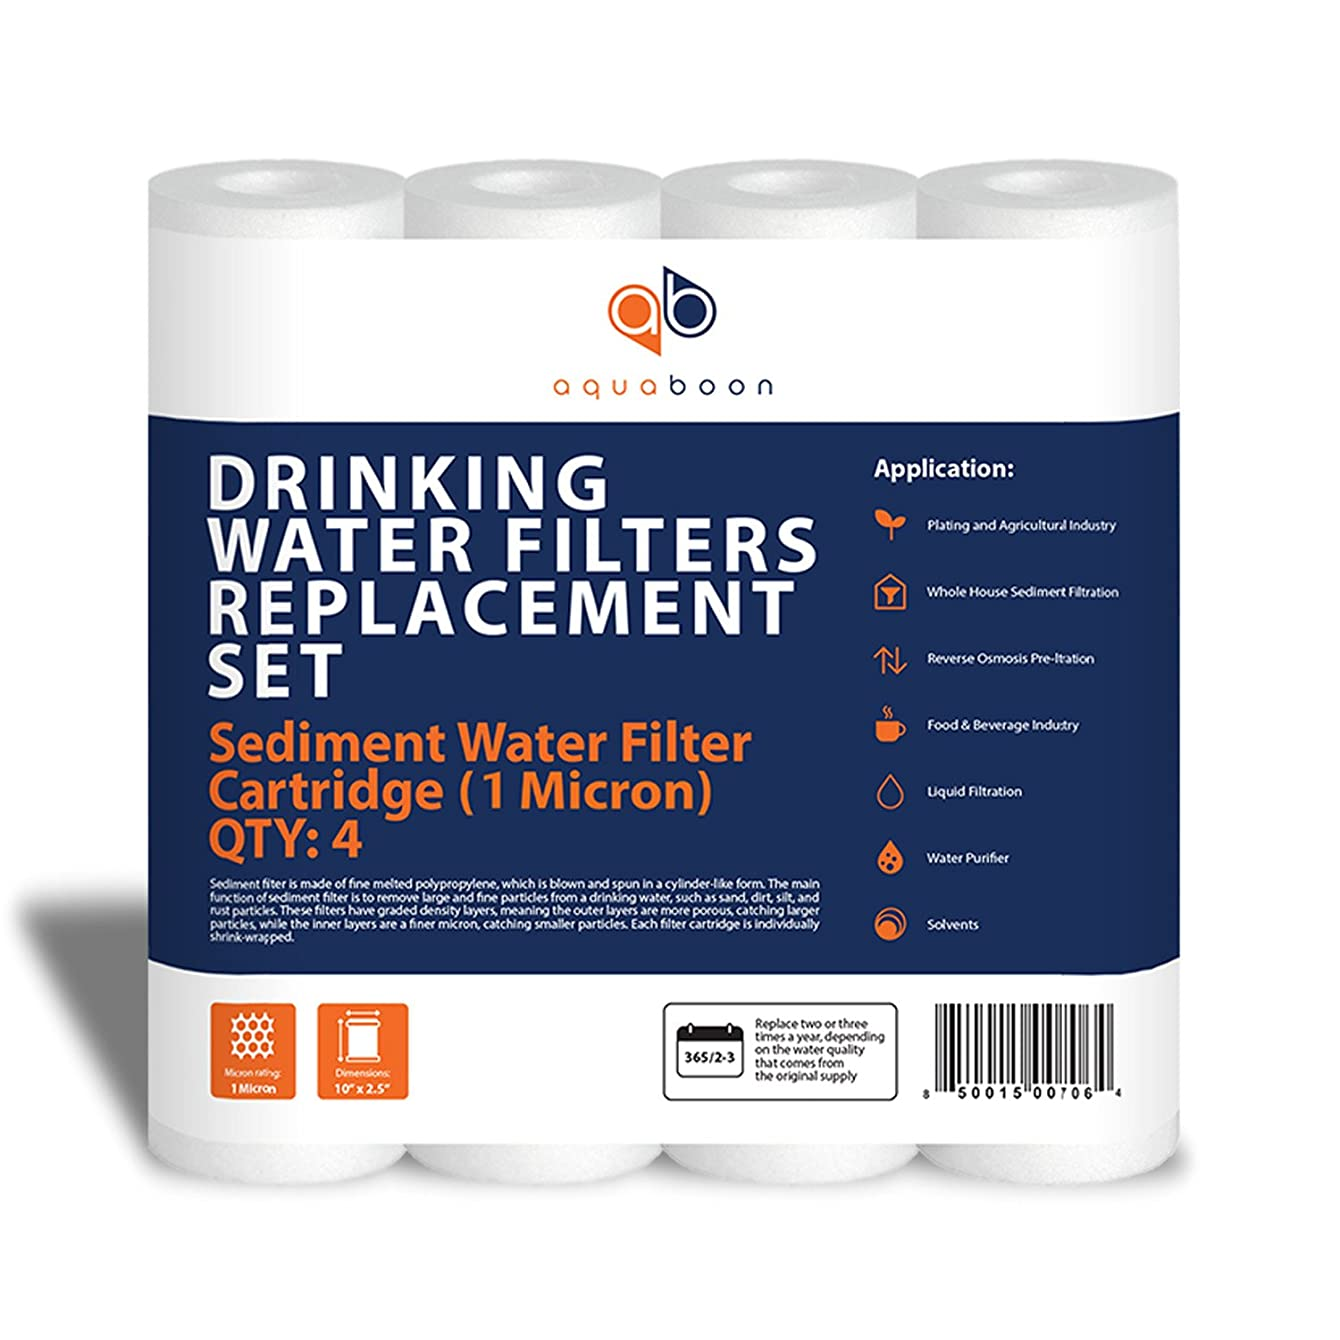 Aquaboon 1-Micron Sediment Water Filter Cartridge, 4-Pack hliilmyxadsel35